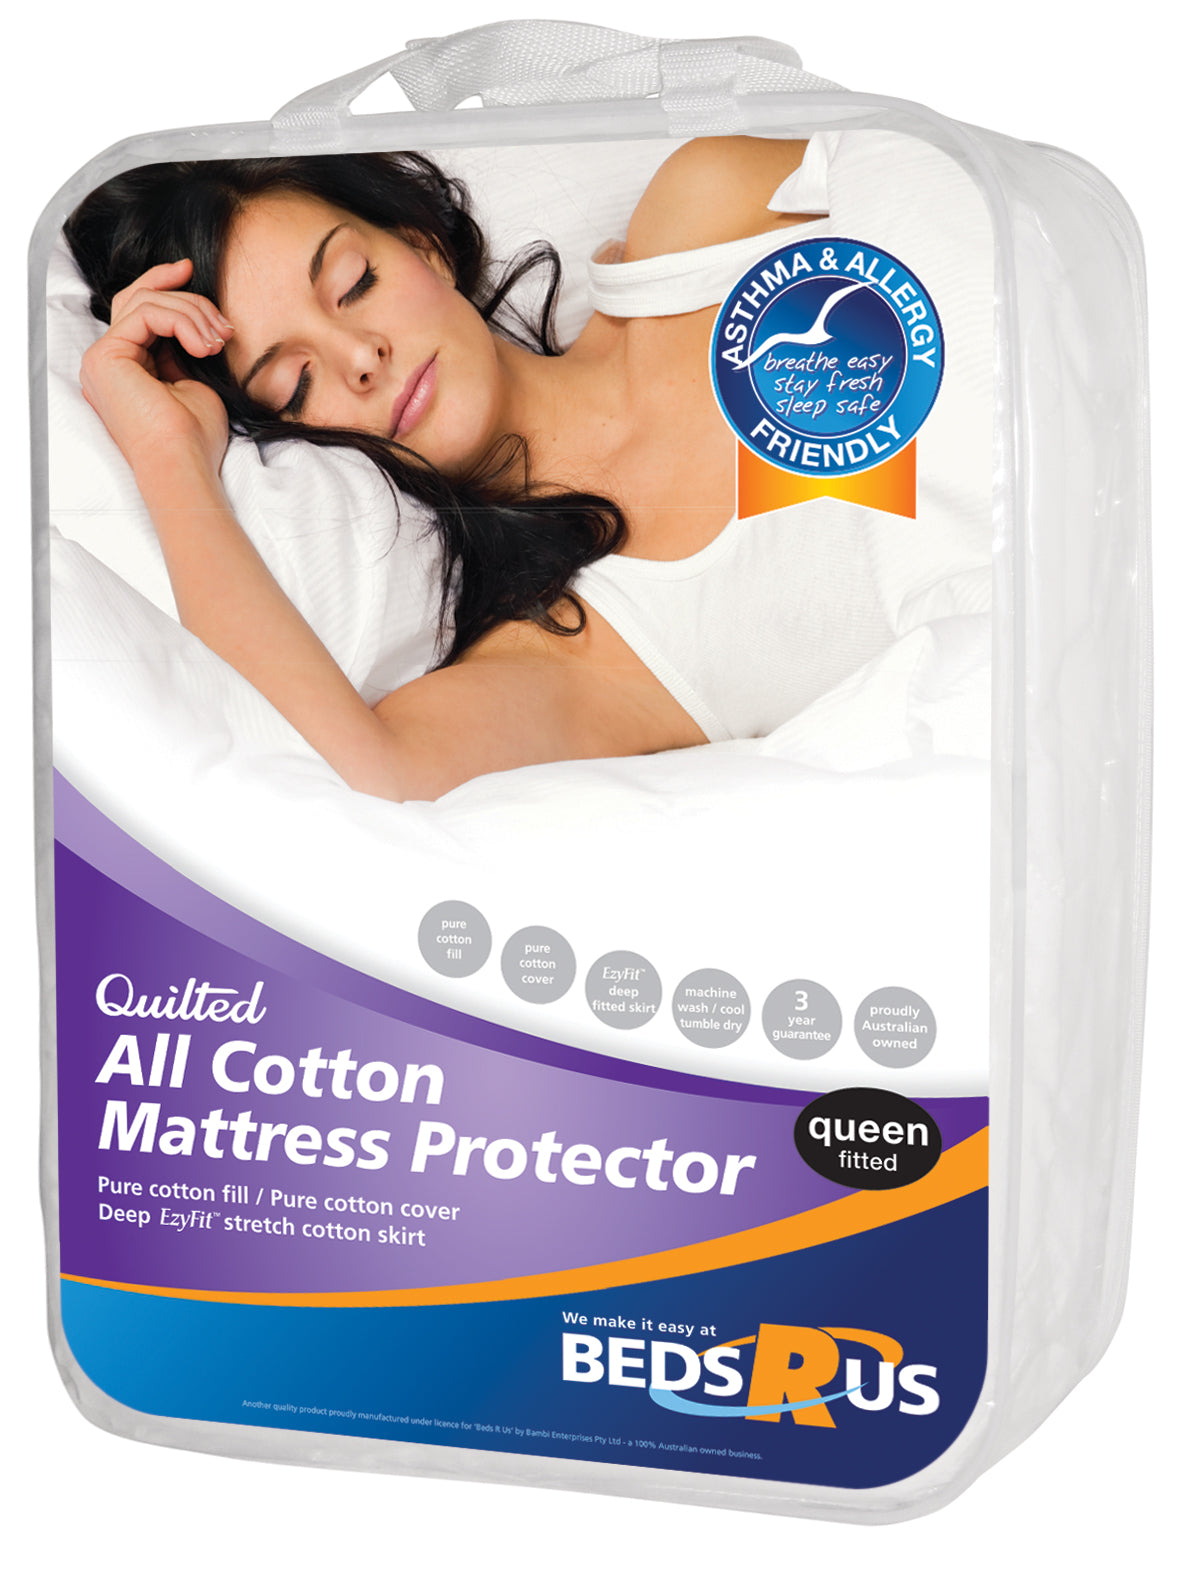 Beds R Us All Cotton Mattress Protector